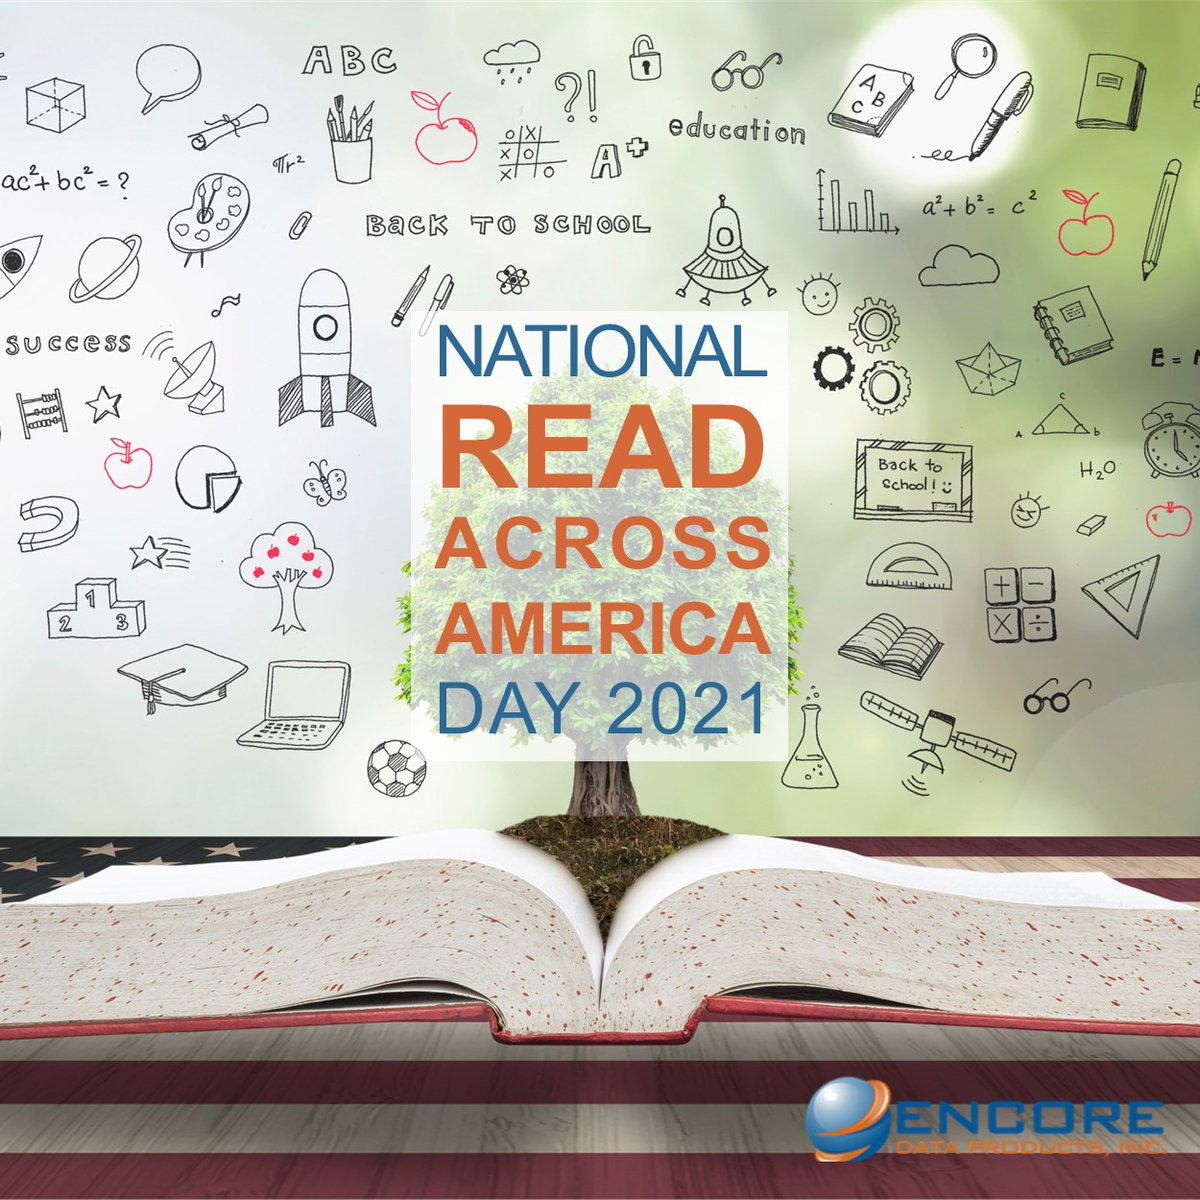 National Read Across America Day is a day to celebrate the privilege of being able to read. Find ideas on how to virtually celebrate Read Across America from NEA here: https://t.co/Xnku4bGjq6 https://t.co/ASn14eeToU